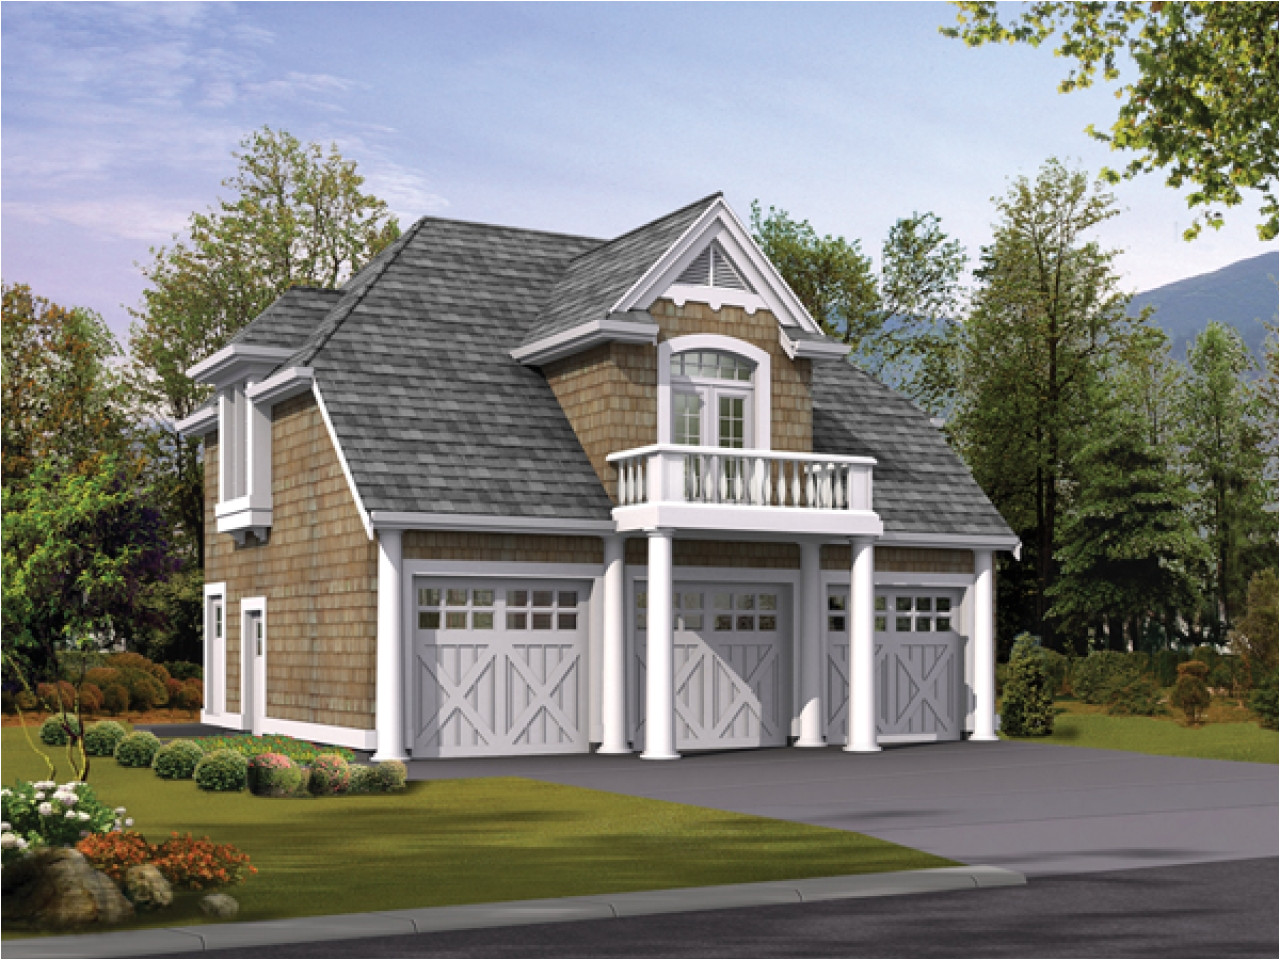 House Plans with attached 4 Car Garage House Plans with 3 ... on 1 car attached garage plans, 3 bay garage house plans, patio plans, attached carports, carport plans, rustic ranch house plans, 4 car attached garage plans, attached shed plans, fireplace plans, rv garage plans, attached house plans, laundry room plans, garage with workshop plans, attached 2 car garage door,